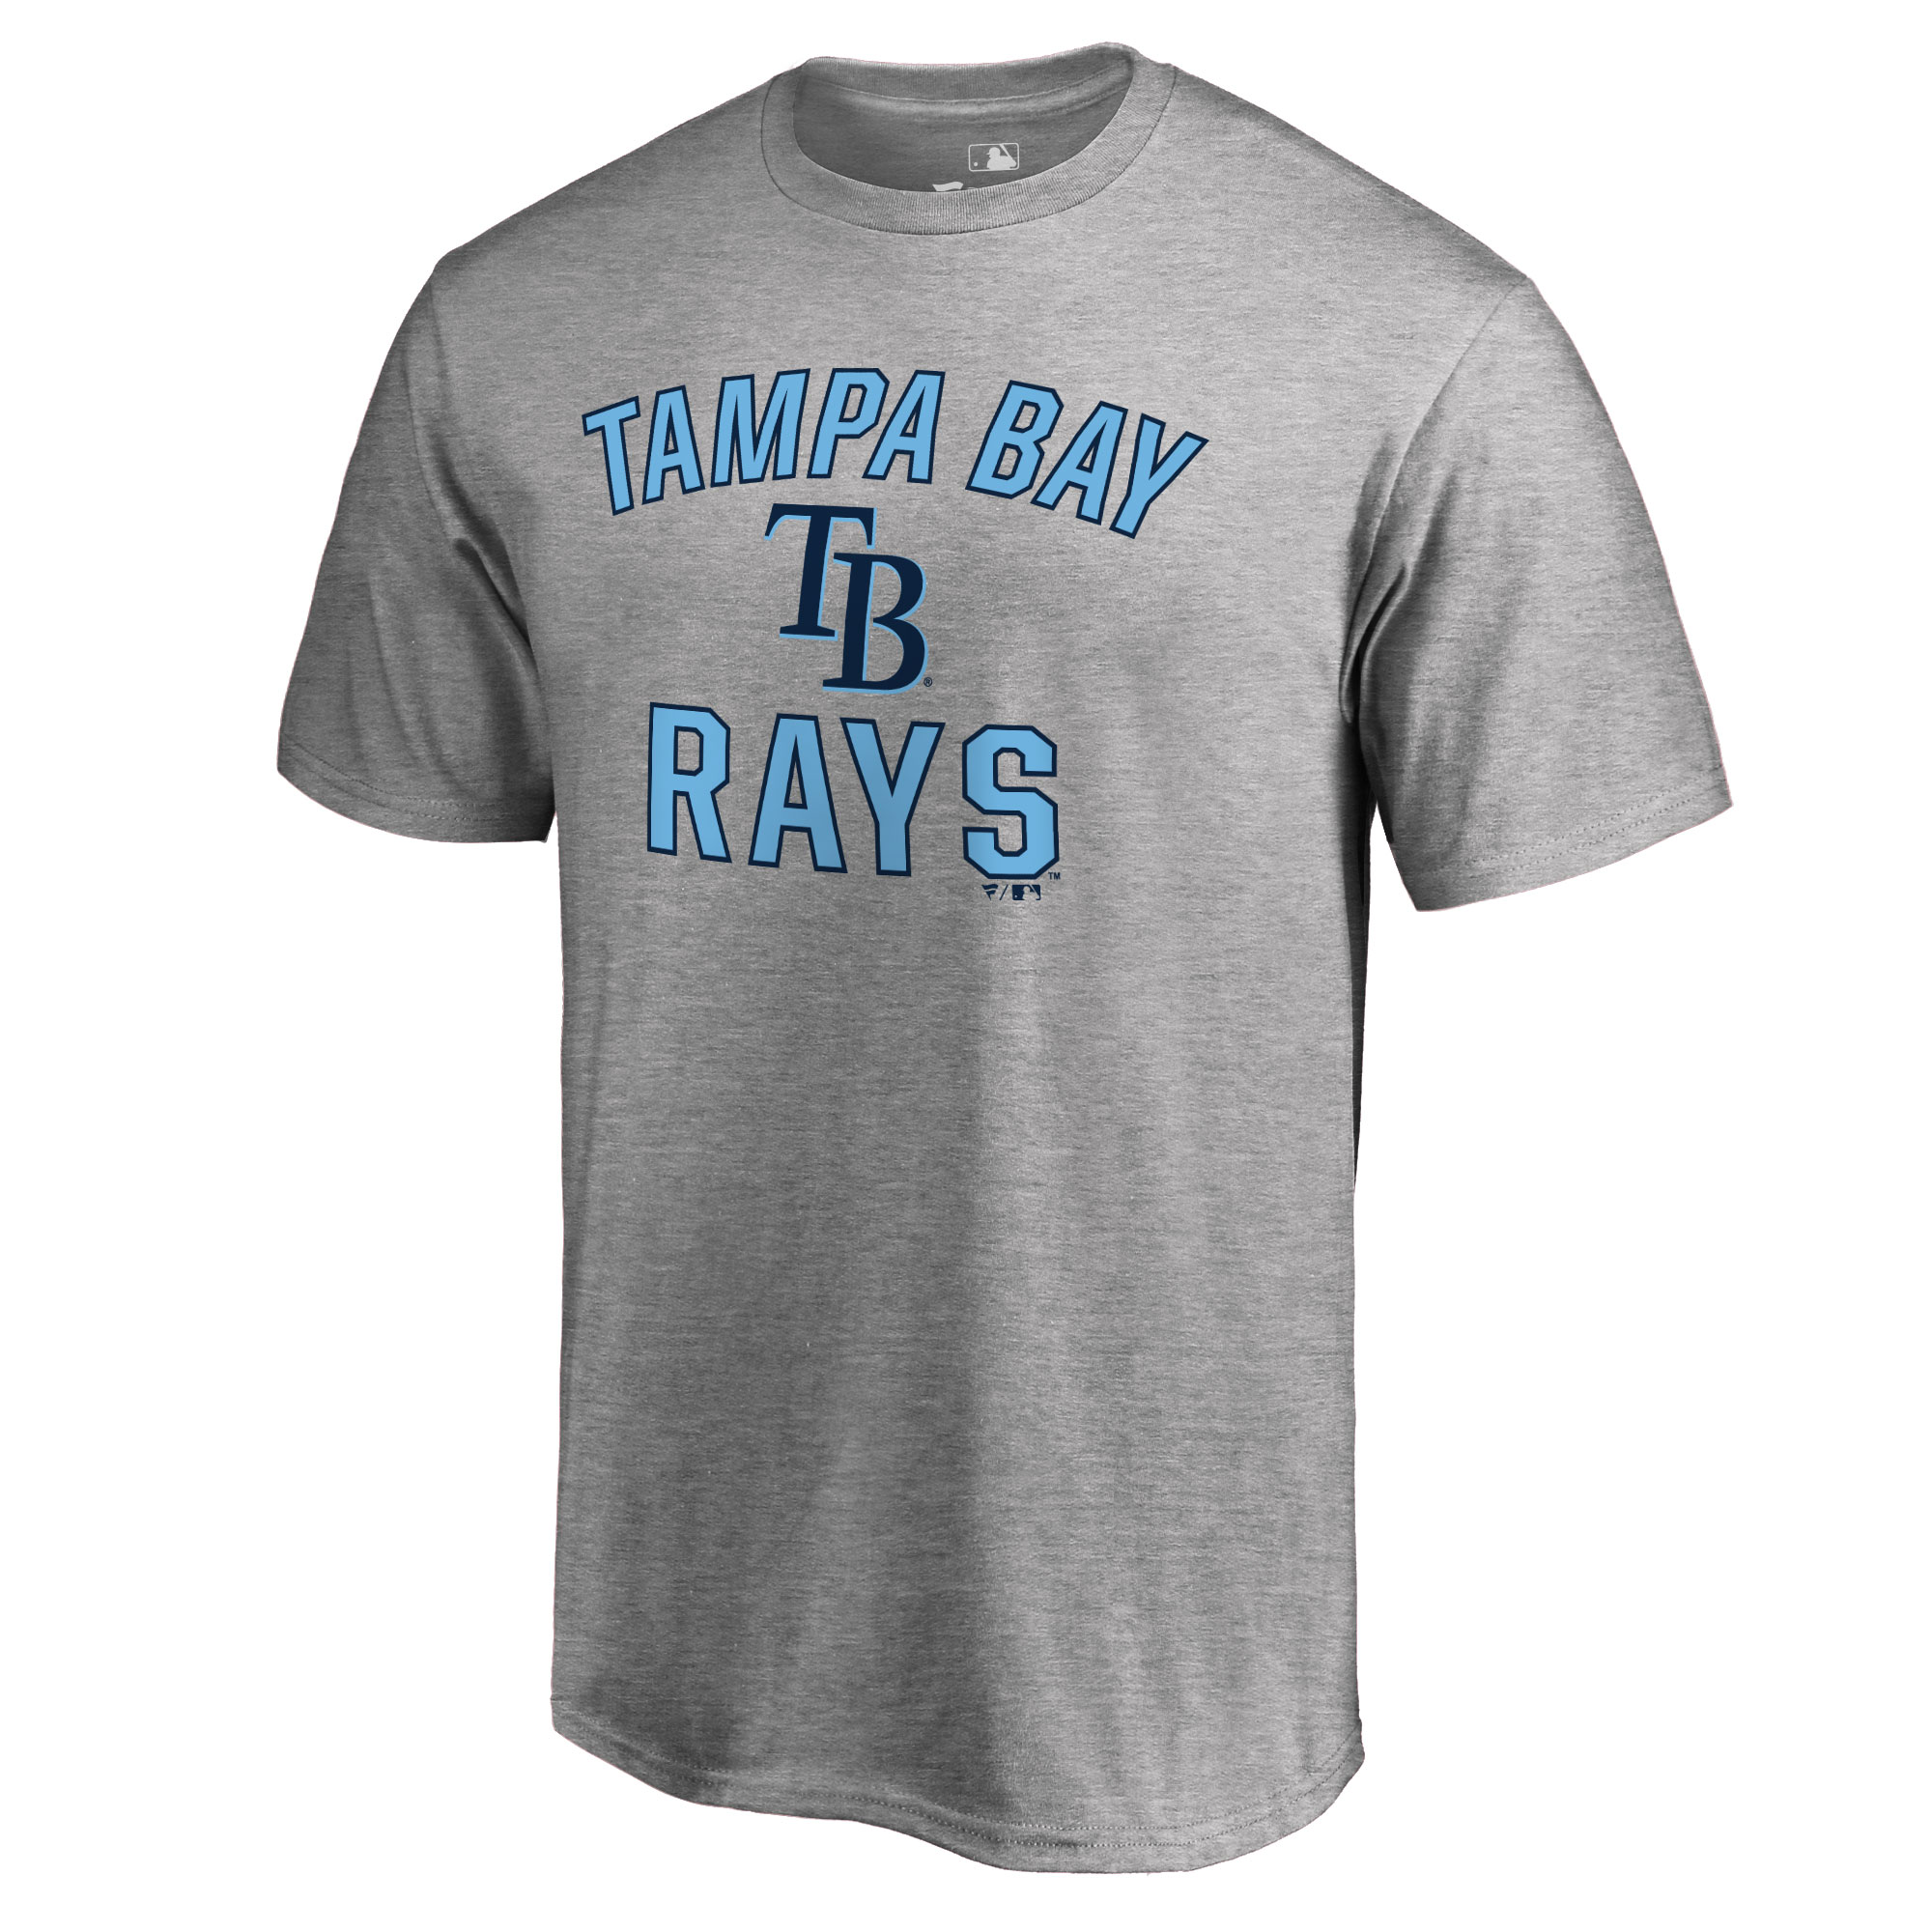 Tampa Bay Rays Victory Arch T-Shirt - Ash